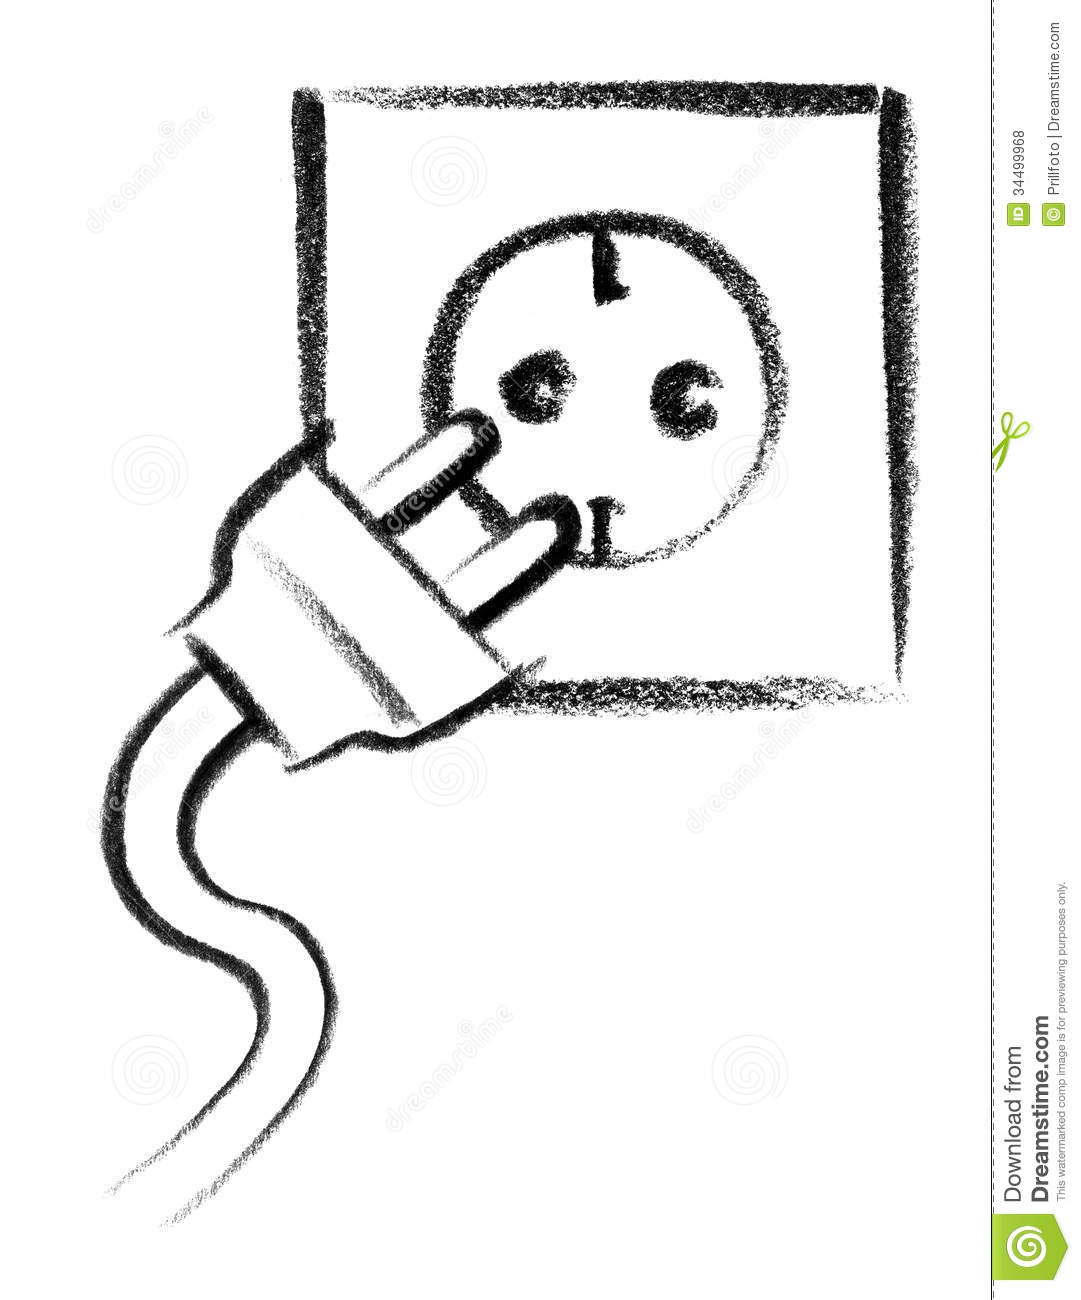 Wiring Diagram For Extension Cord Plug. Wiring. Free Download Car.